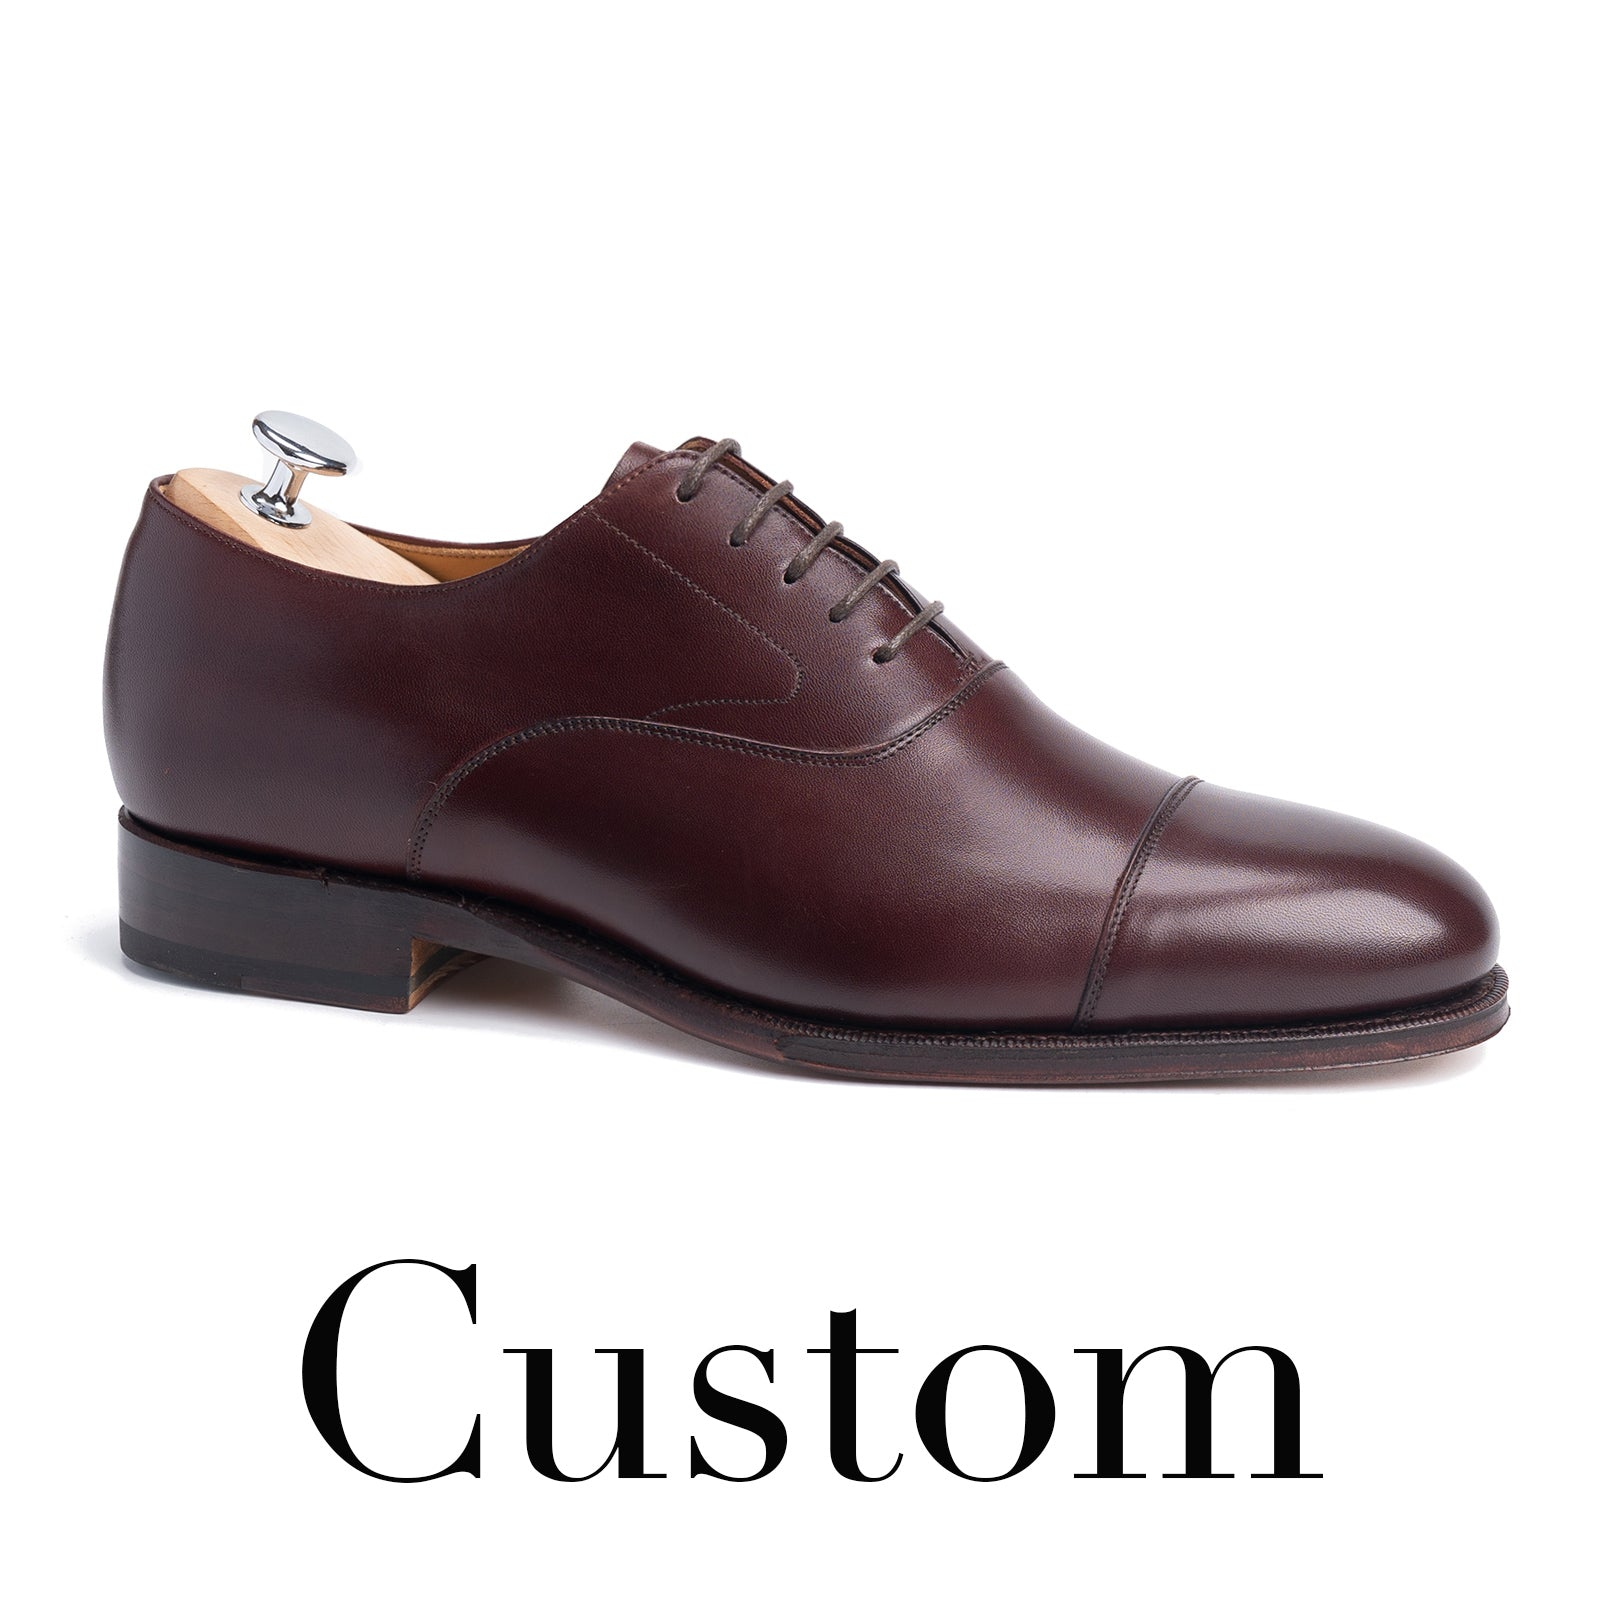 101198 - BROWN SHELL CORDOVAN - E